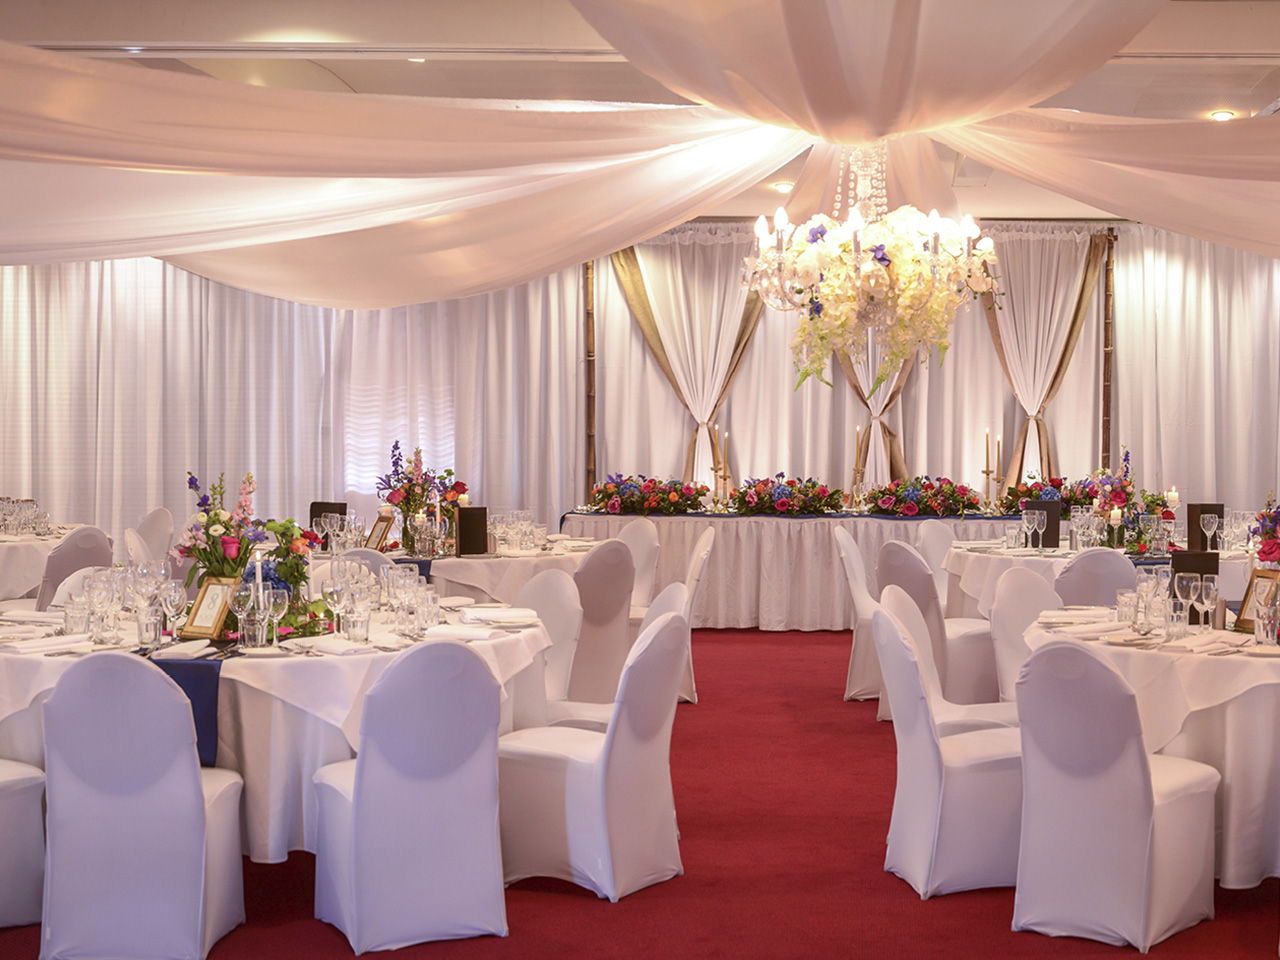 Tables And Chairs In Banquet Style And A Special Long Table With Flower Centerpieces, Chandelier And Ceiling Drapping